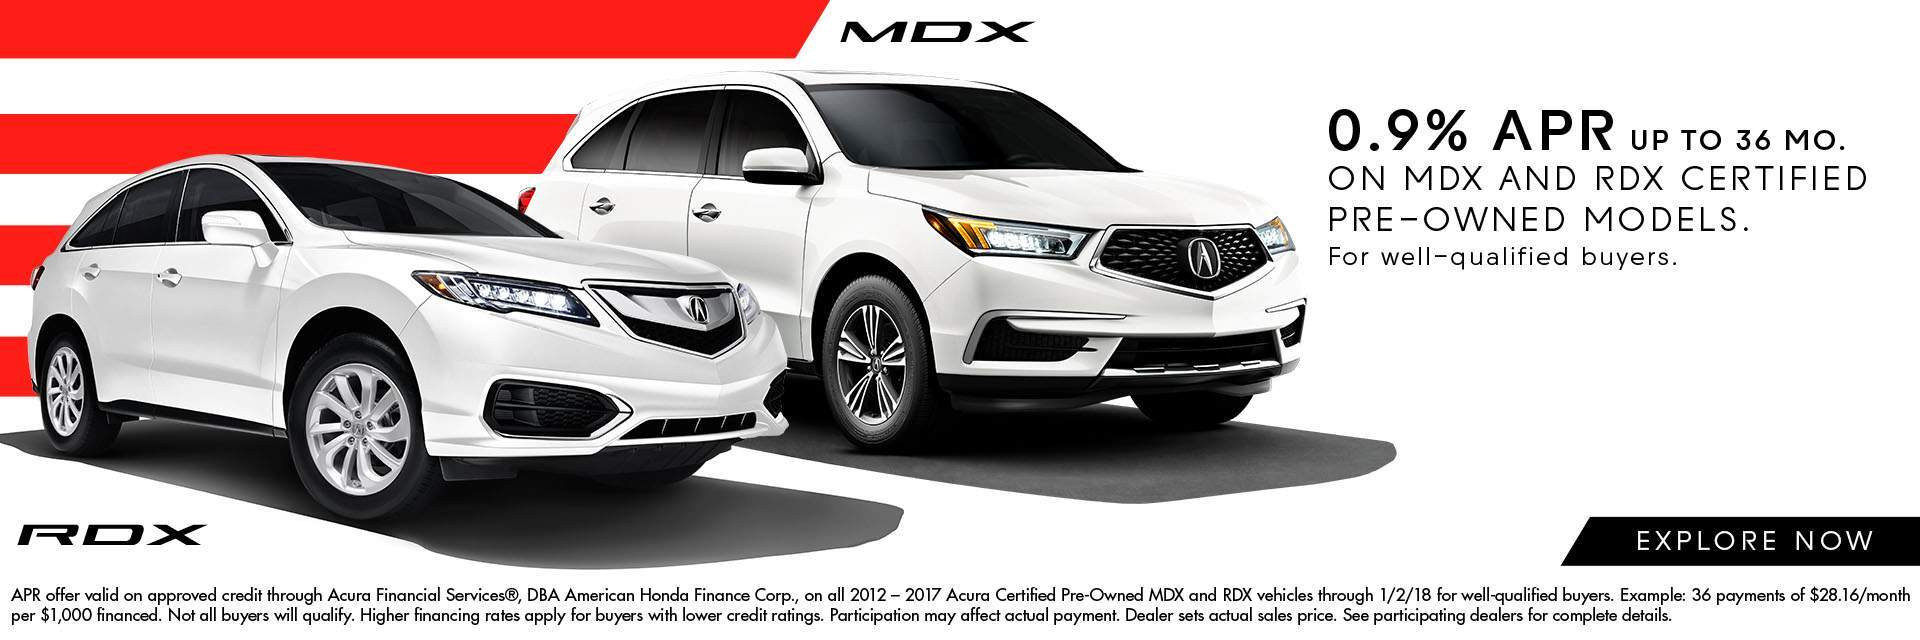 Certified Pre-Owned MDX and RDX